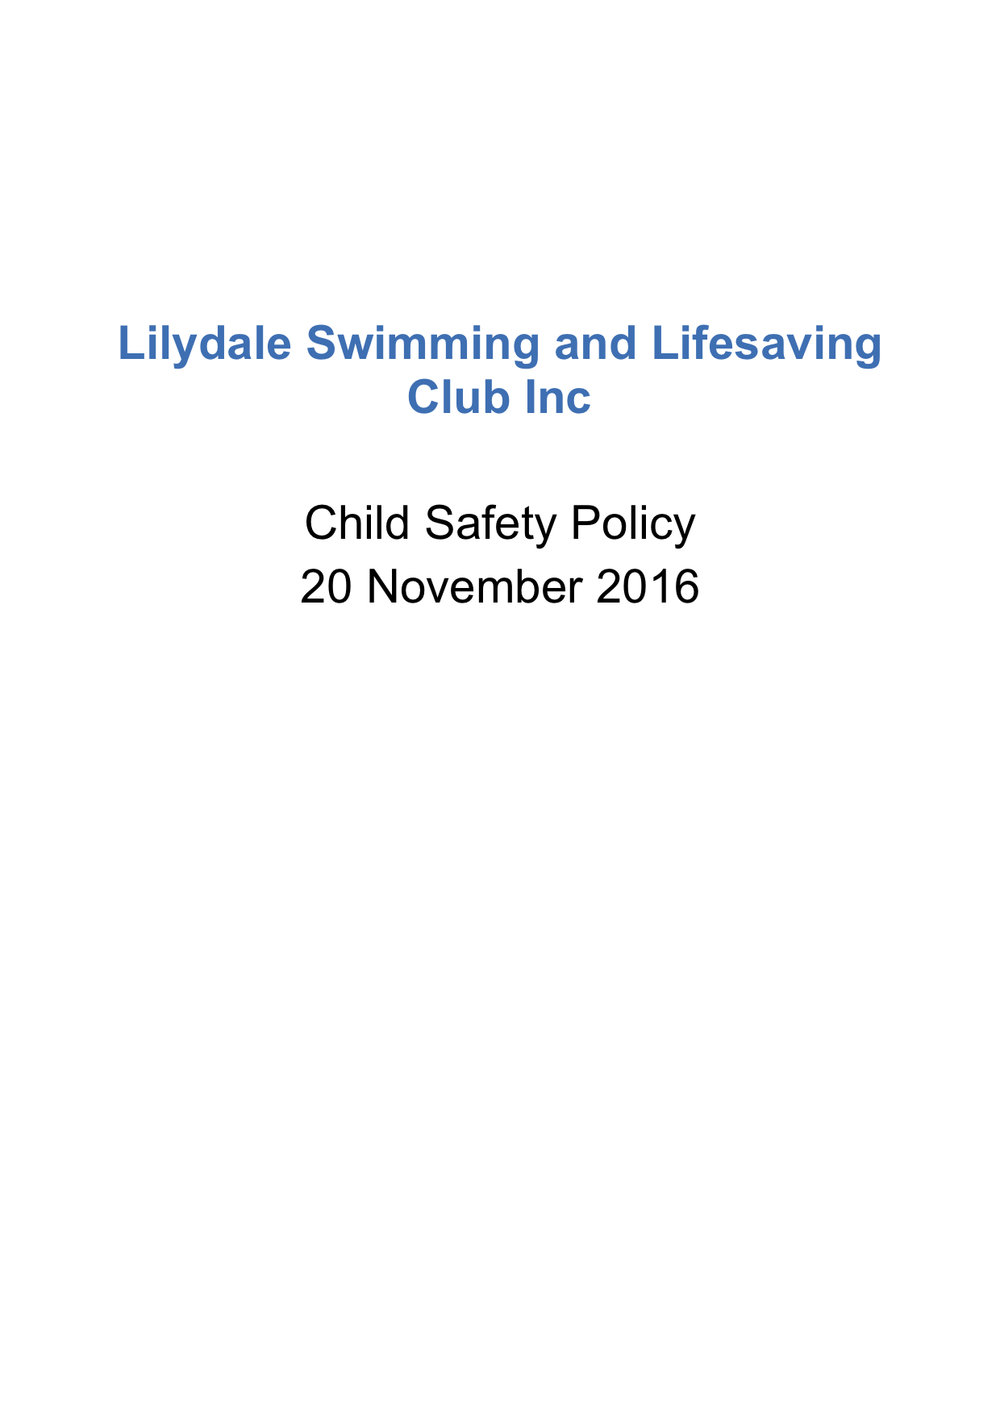 LSC Child Safety Policy 20-11-16 pg1.jpg